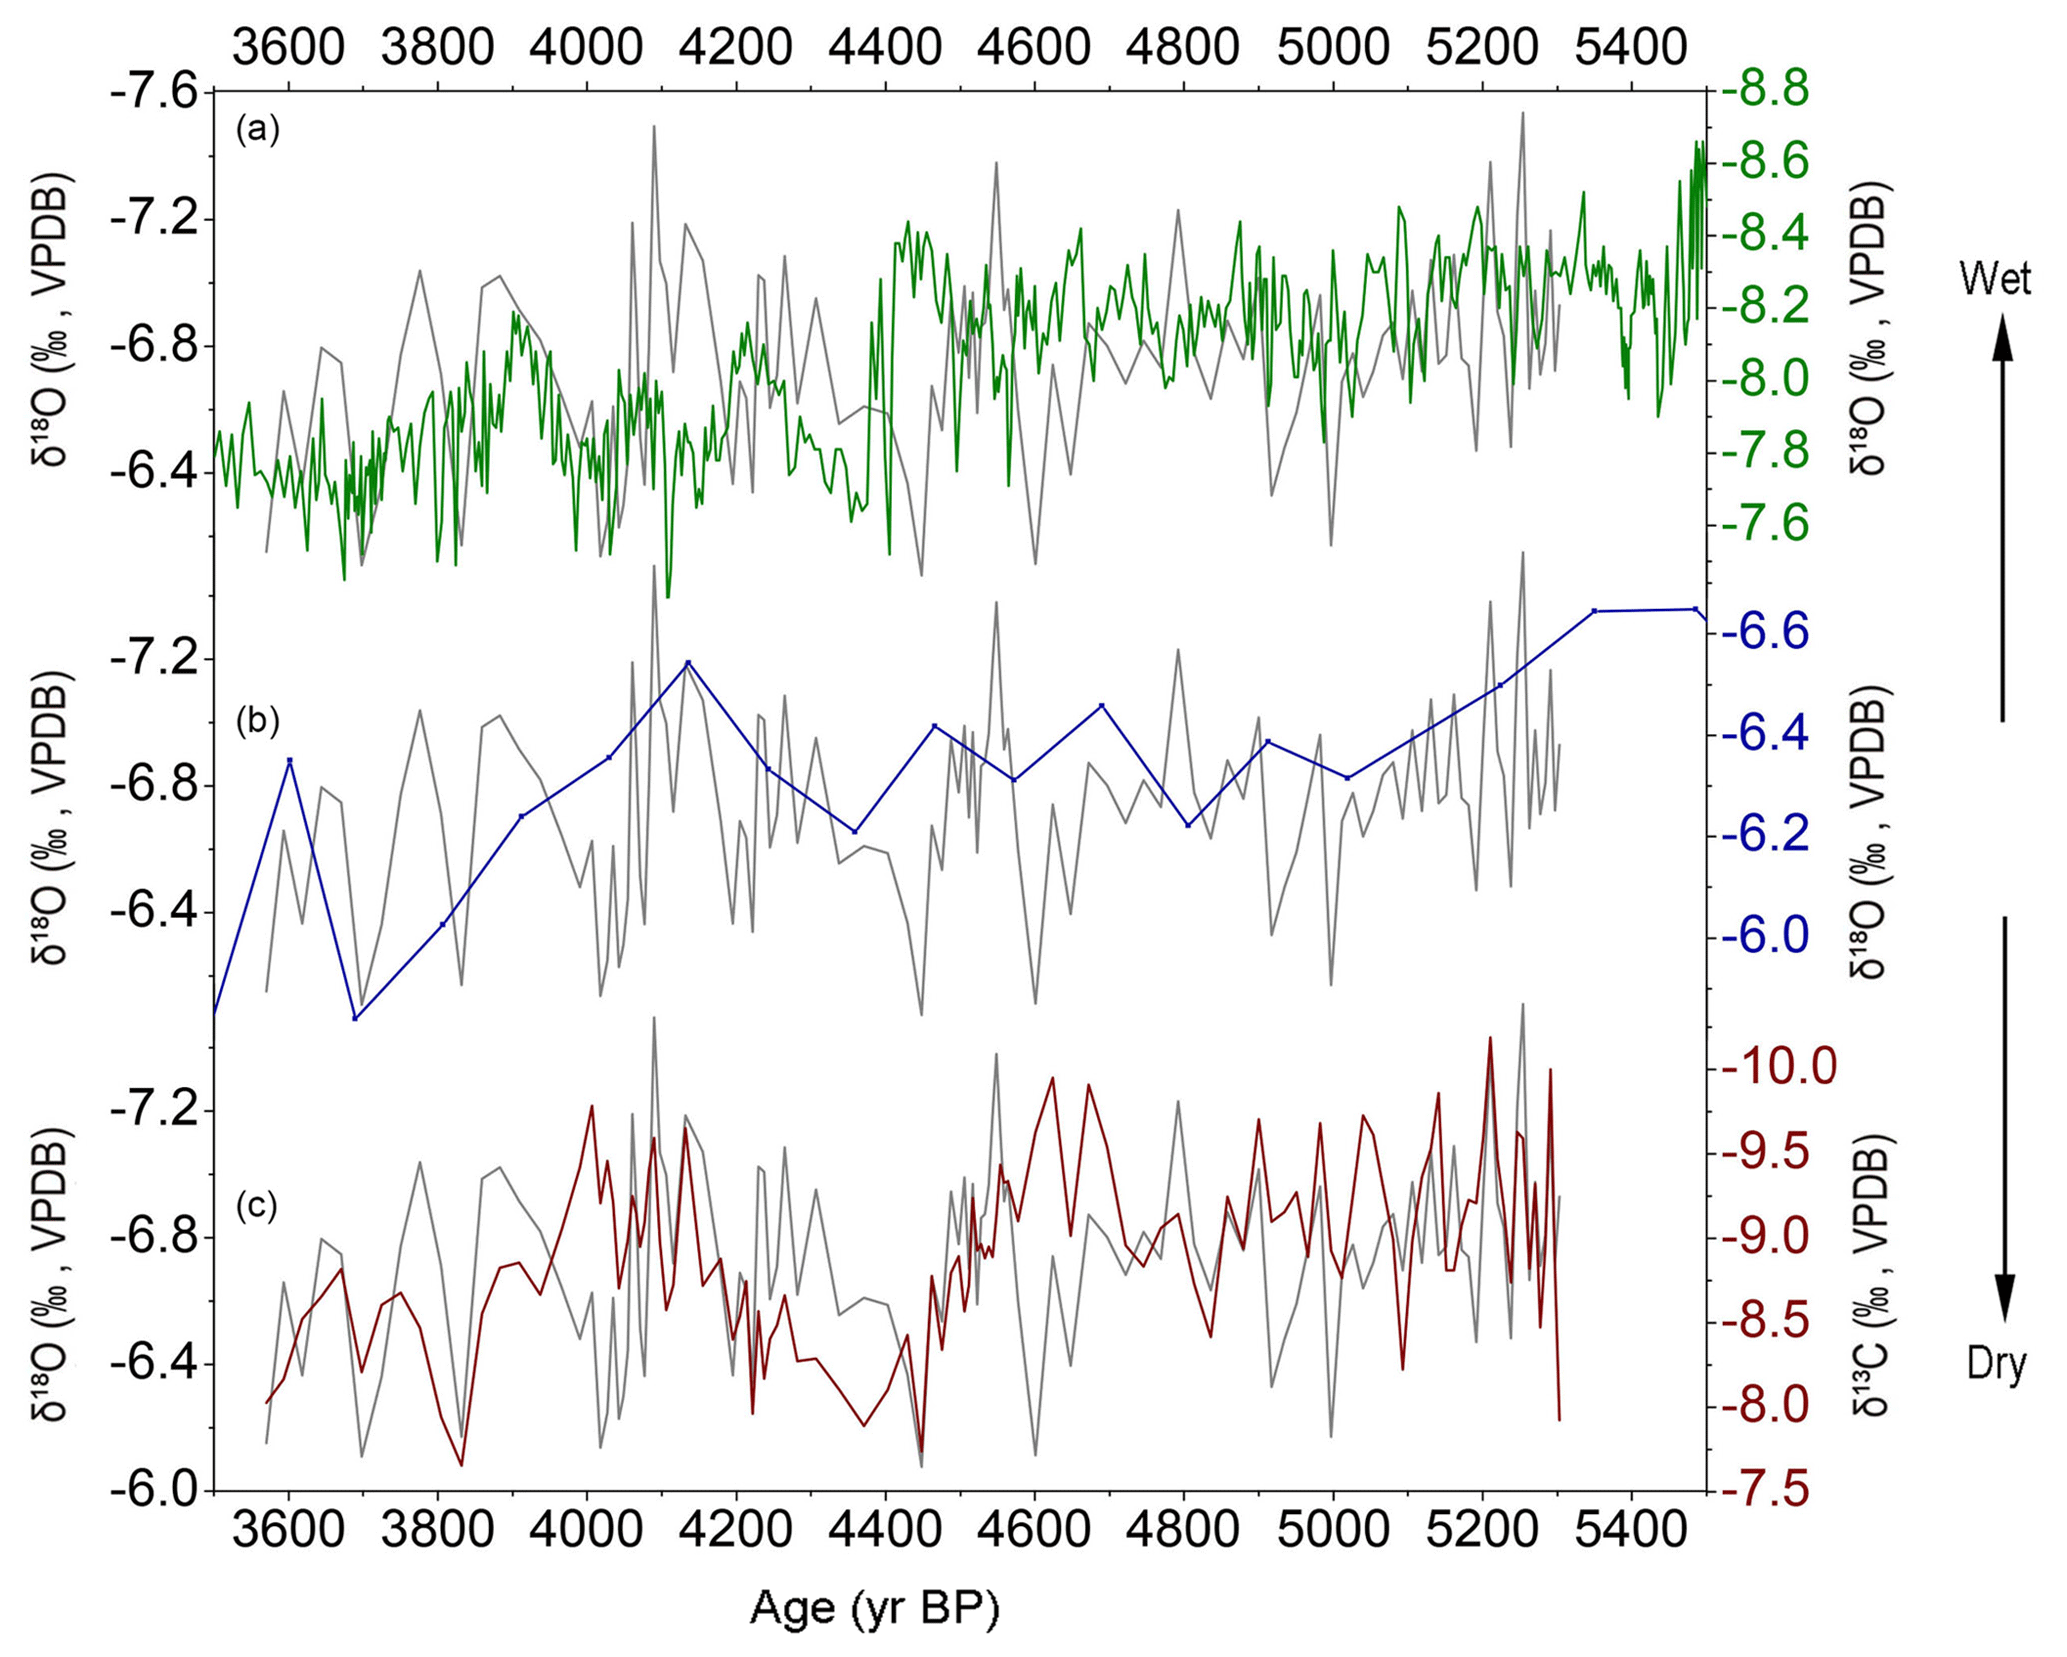 CP - Hydroclimatic variations in southeastern China during